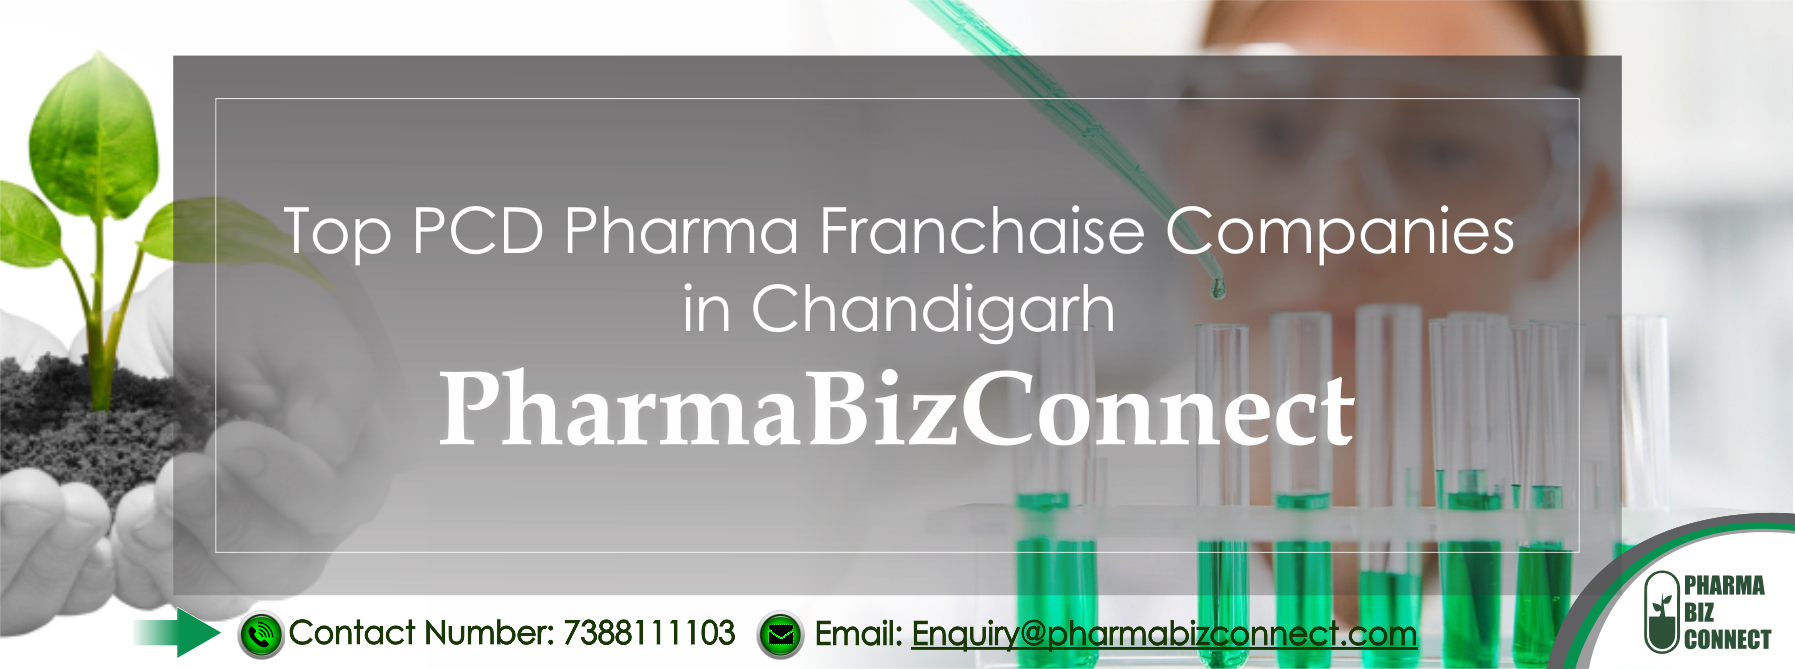 PCD Pharma Franchise Companies in Chandigarh